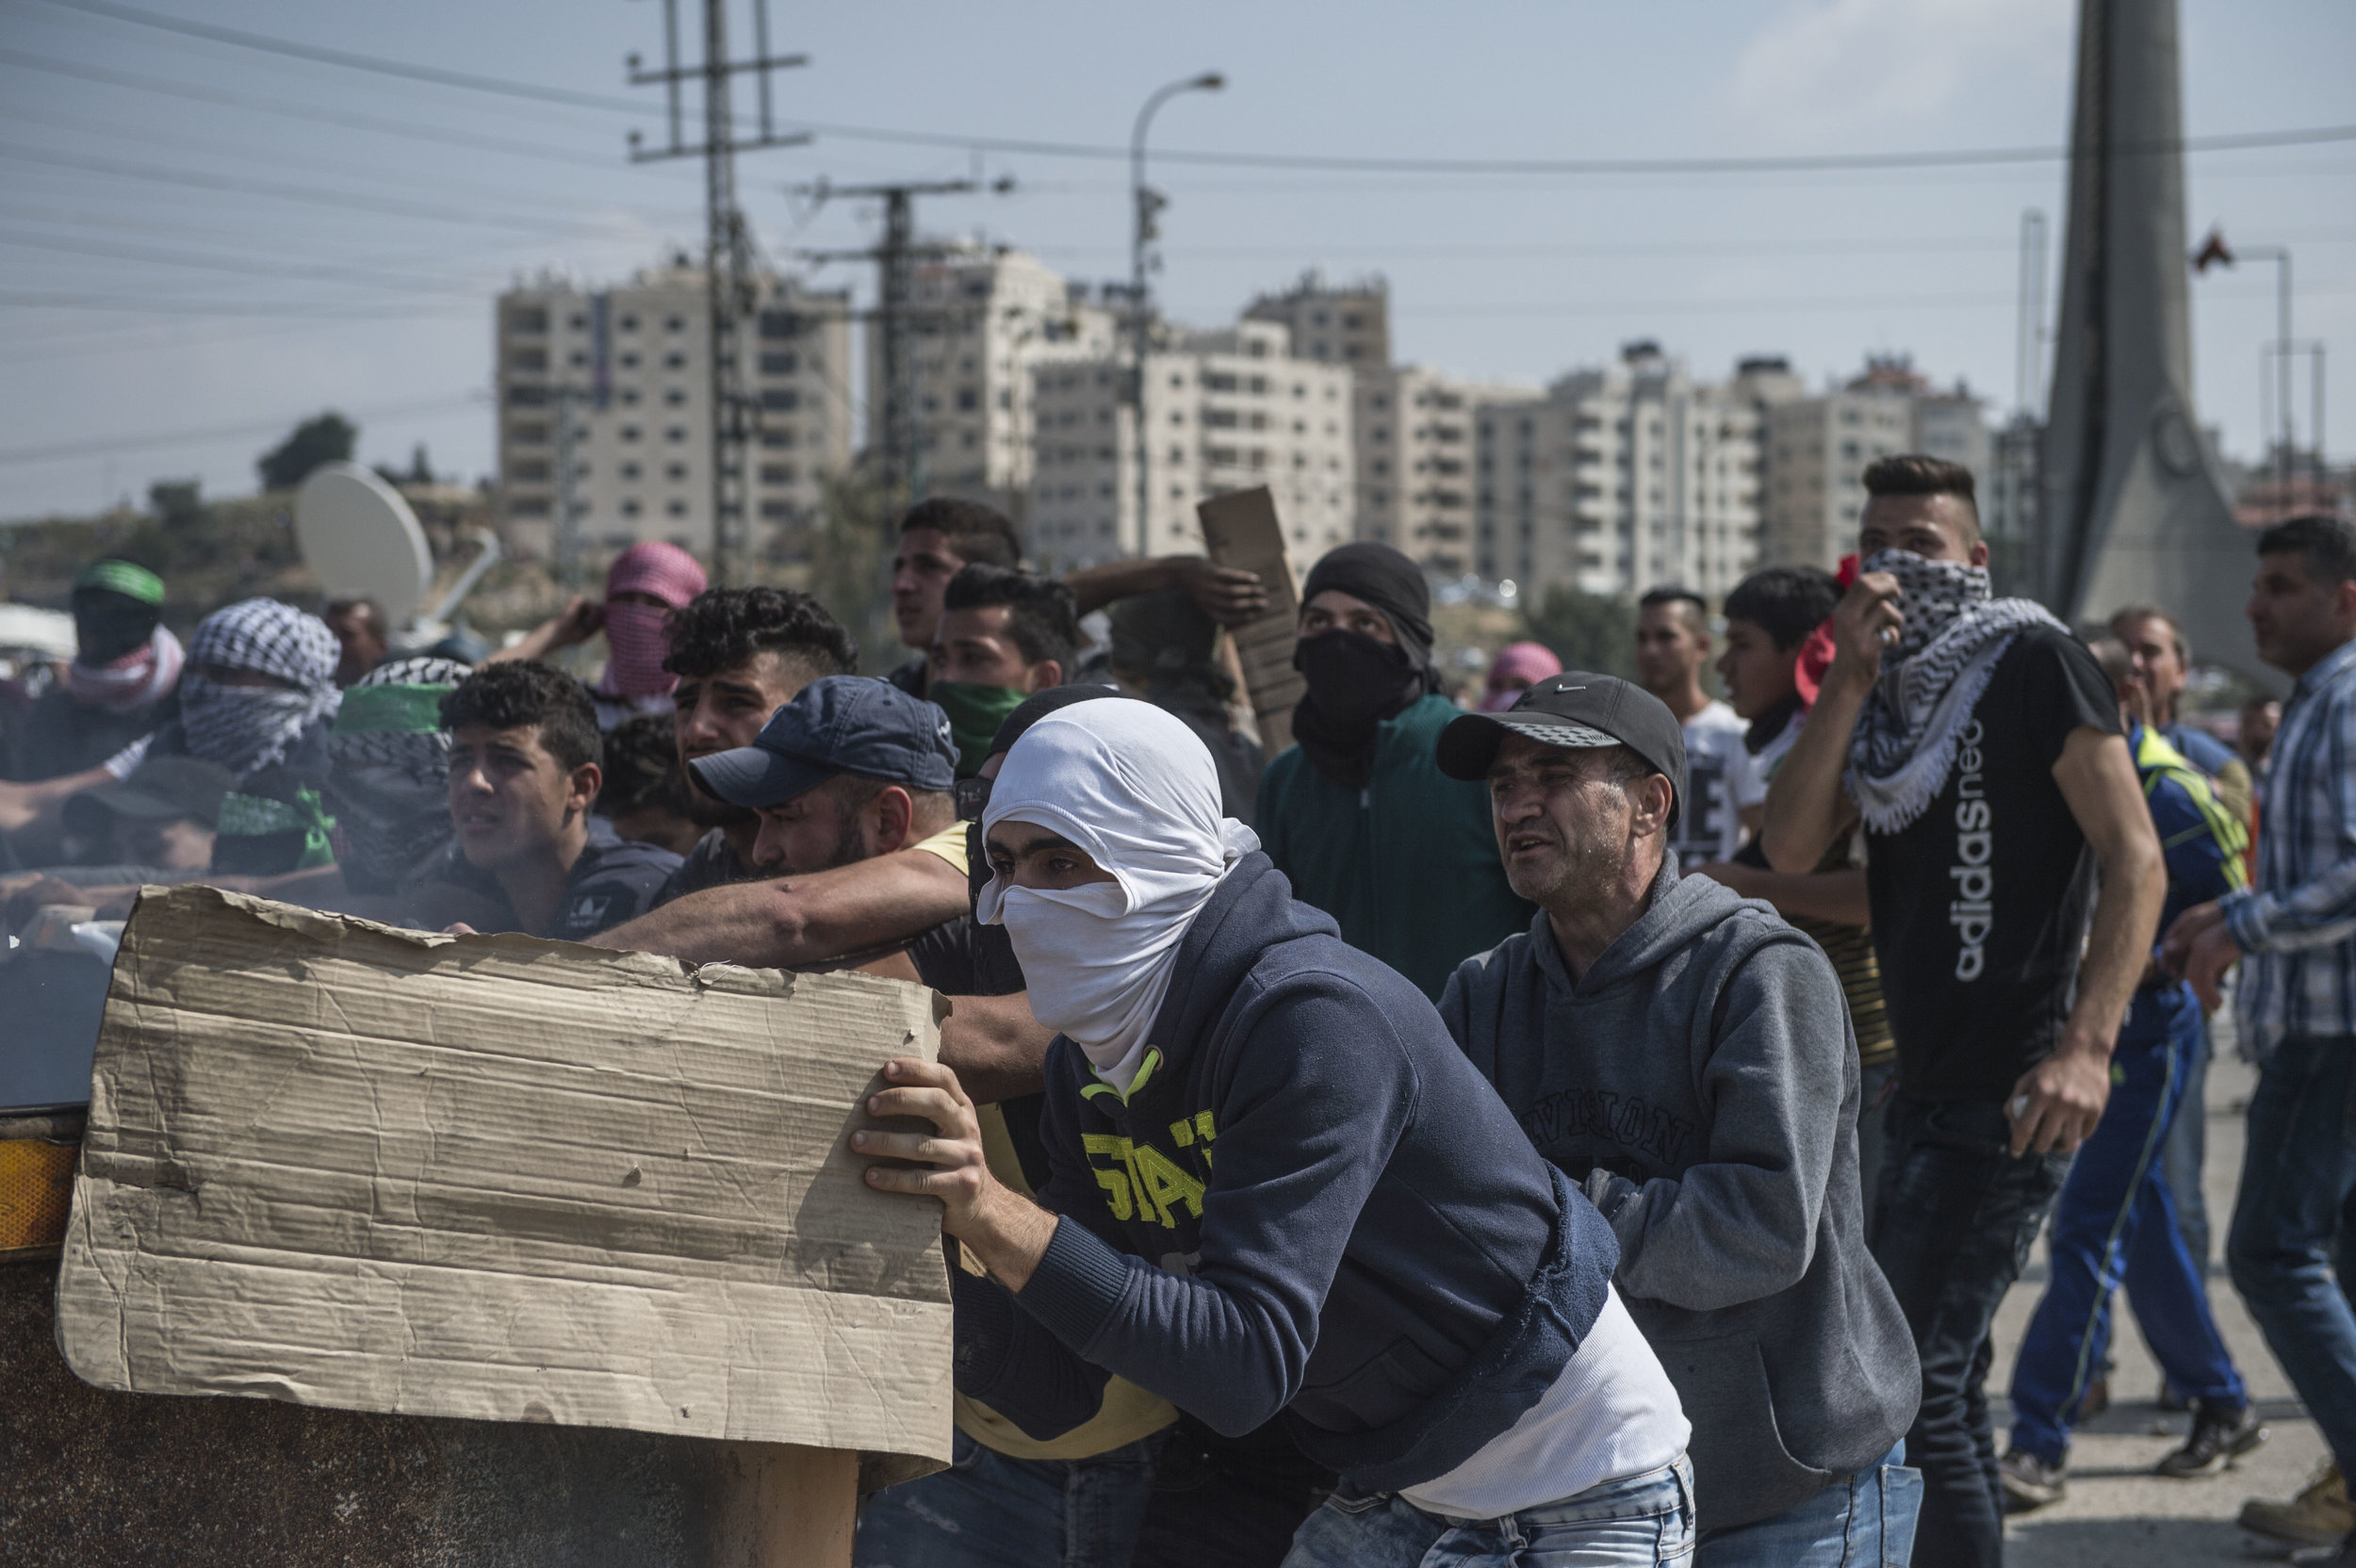 0515_2018_Hatcher_NakbaProtests_013.JPG